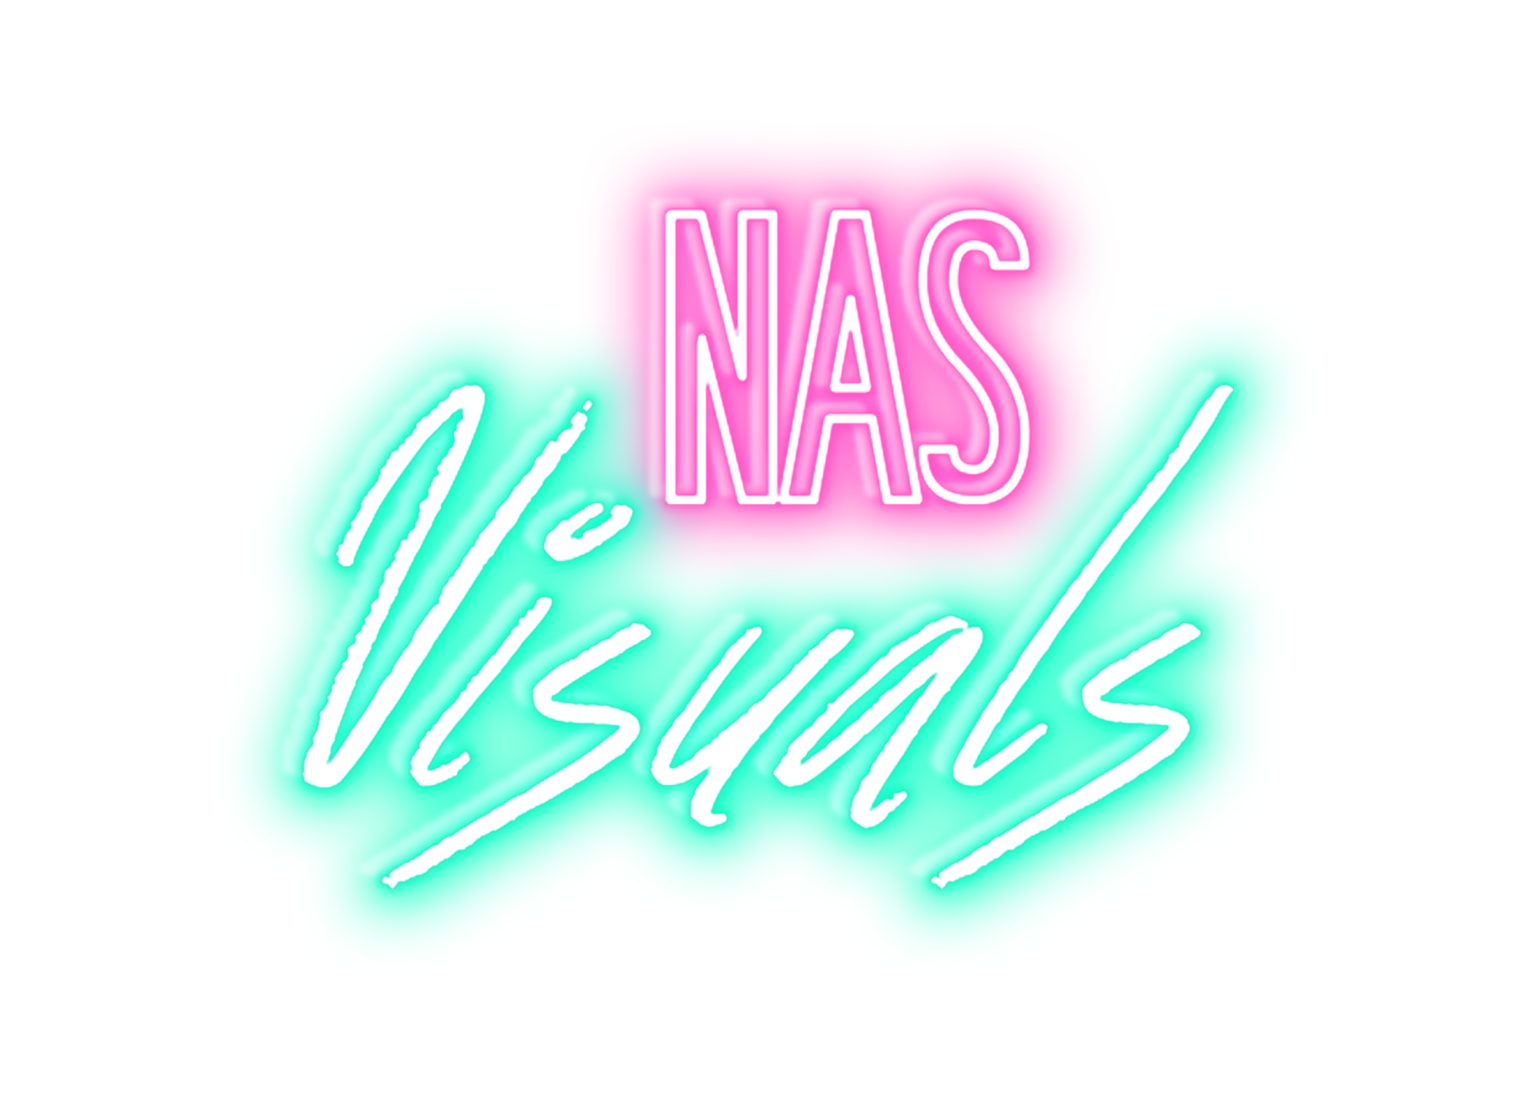 NAS Visuals, LLC